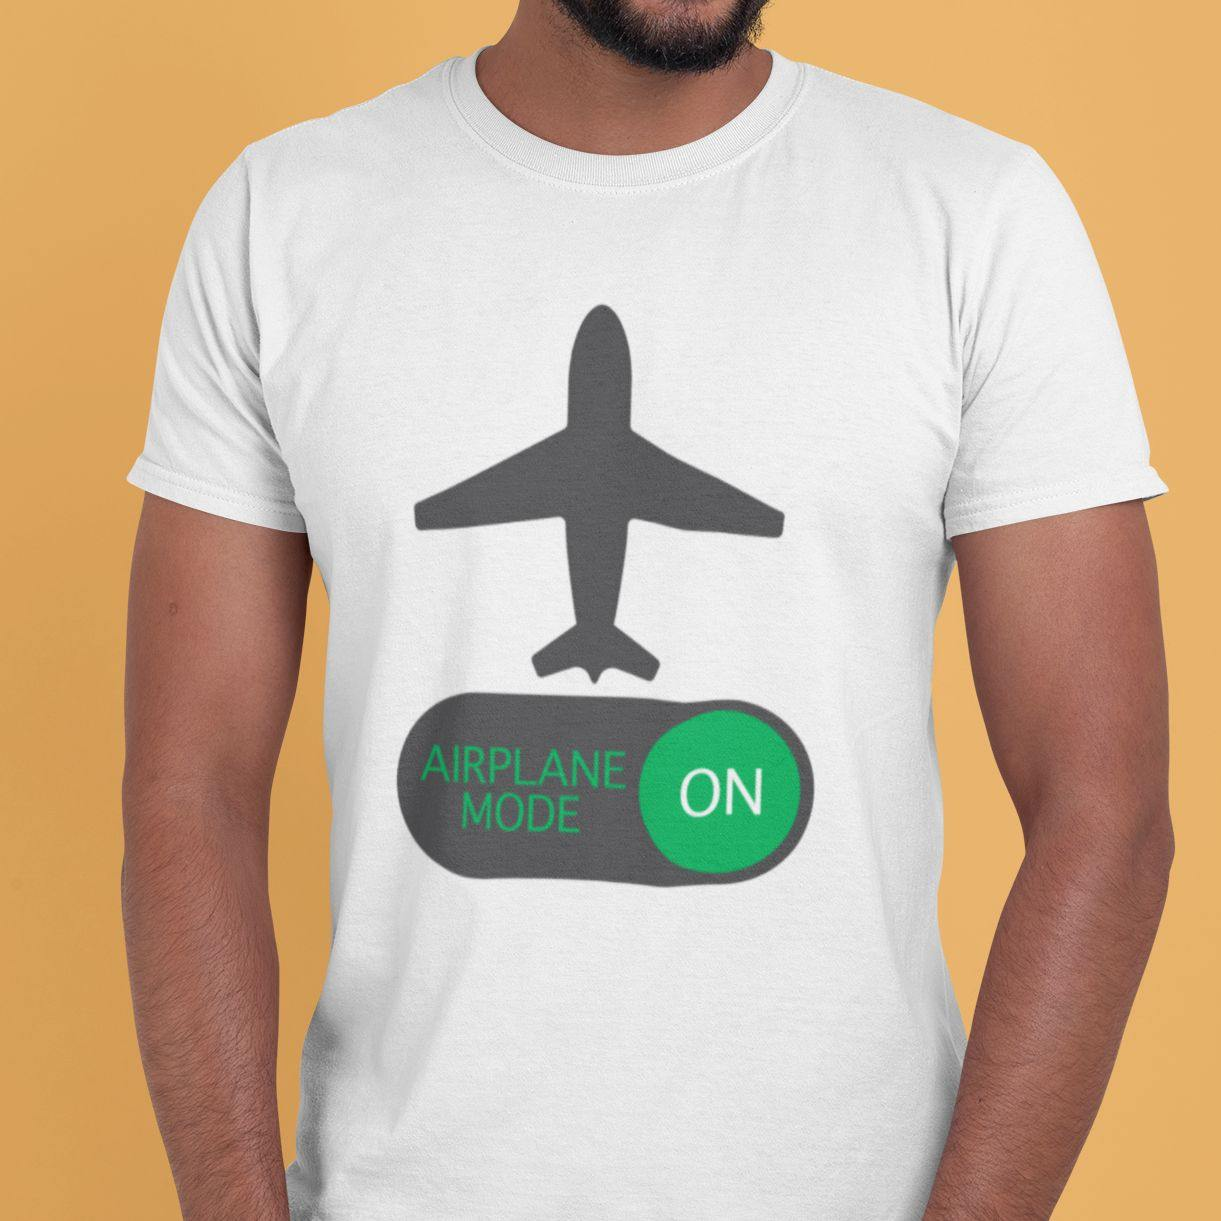 Airplane Mode ON - Men's Tshirt - Daily Suvichar Store